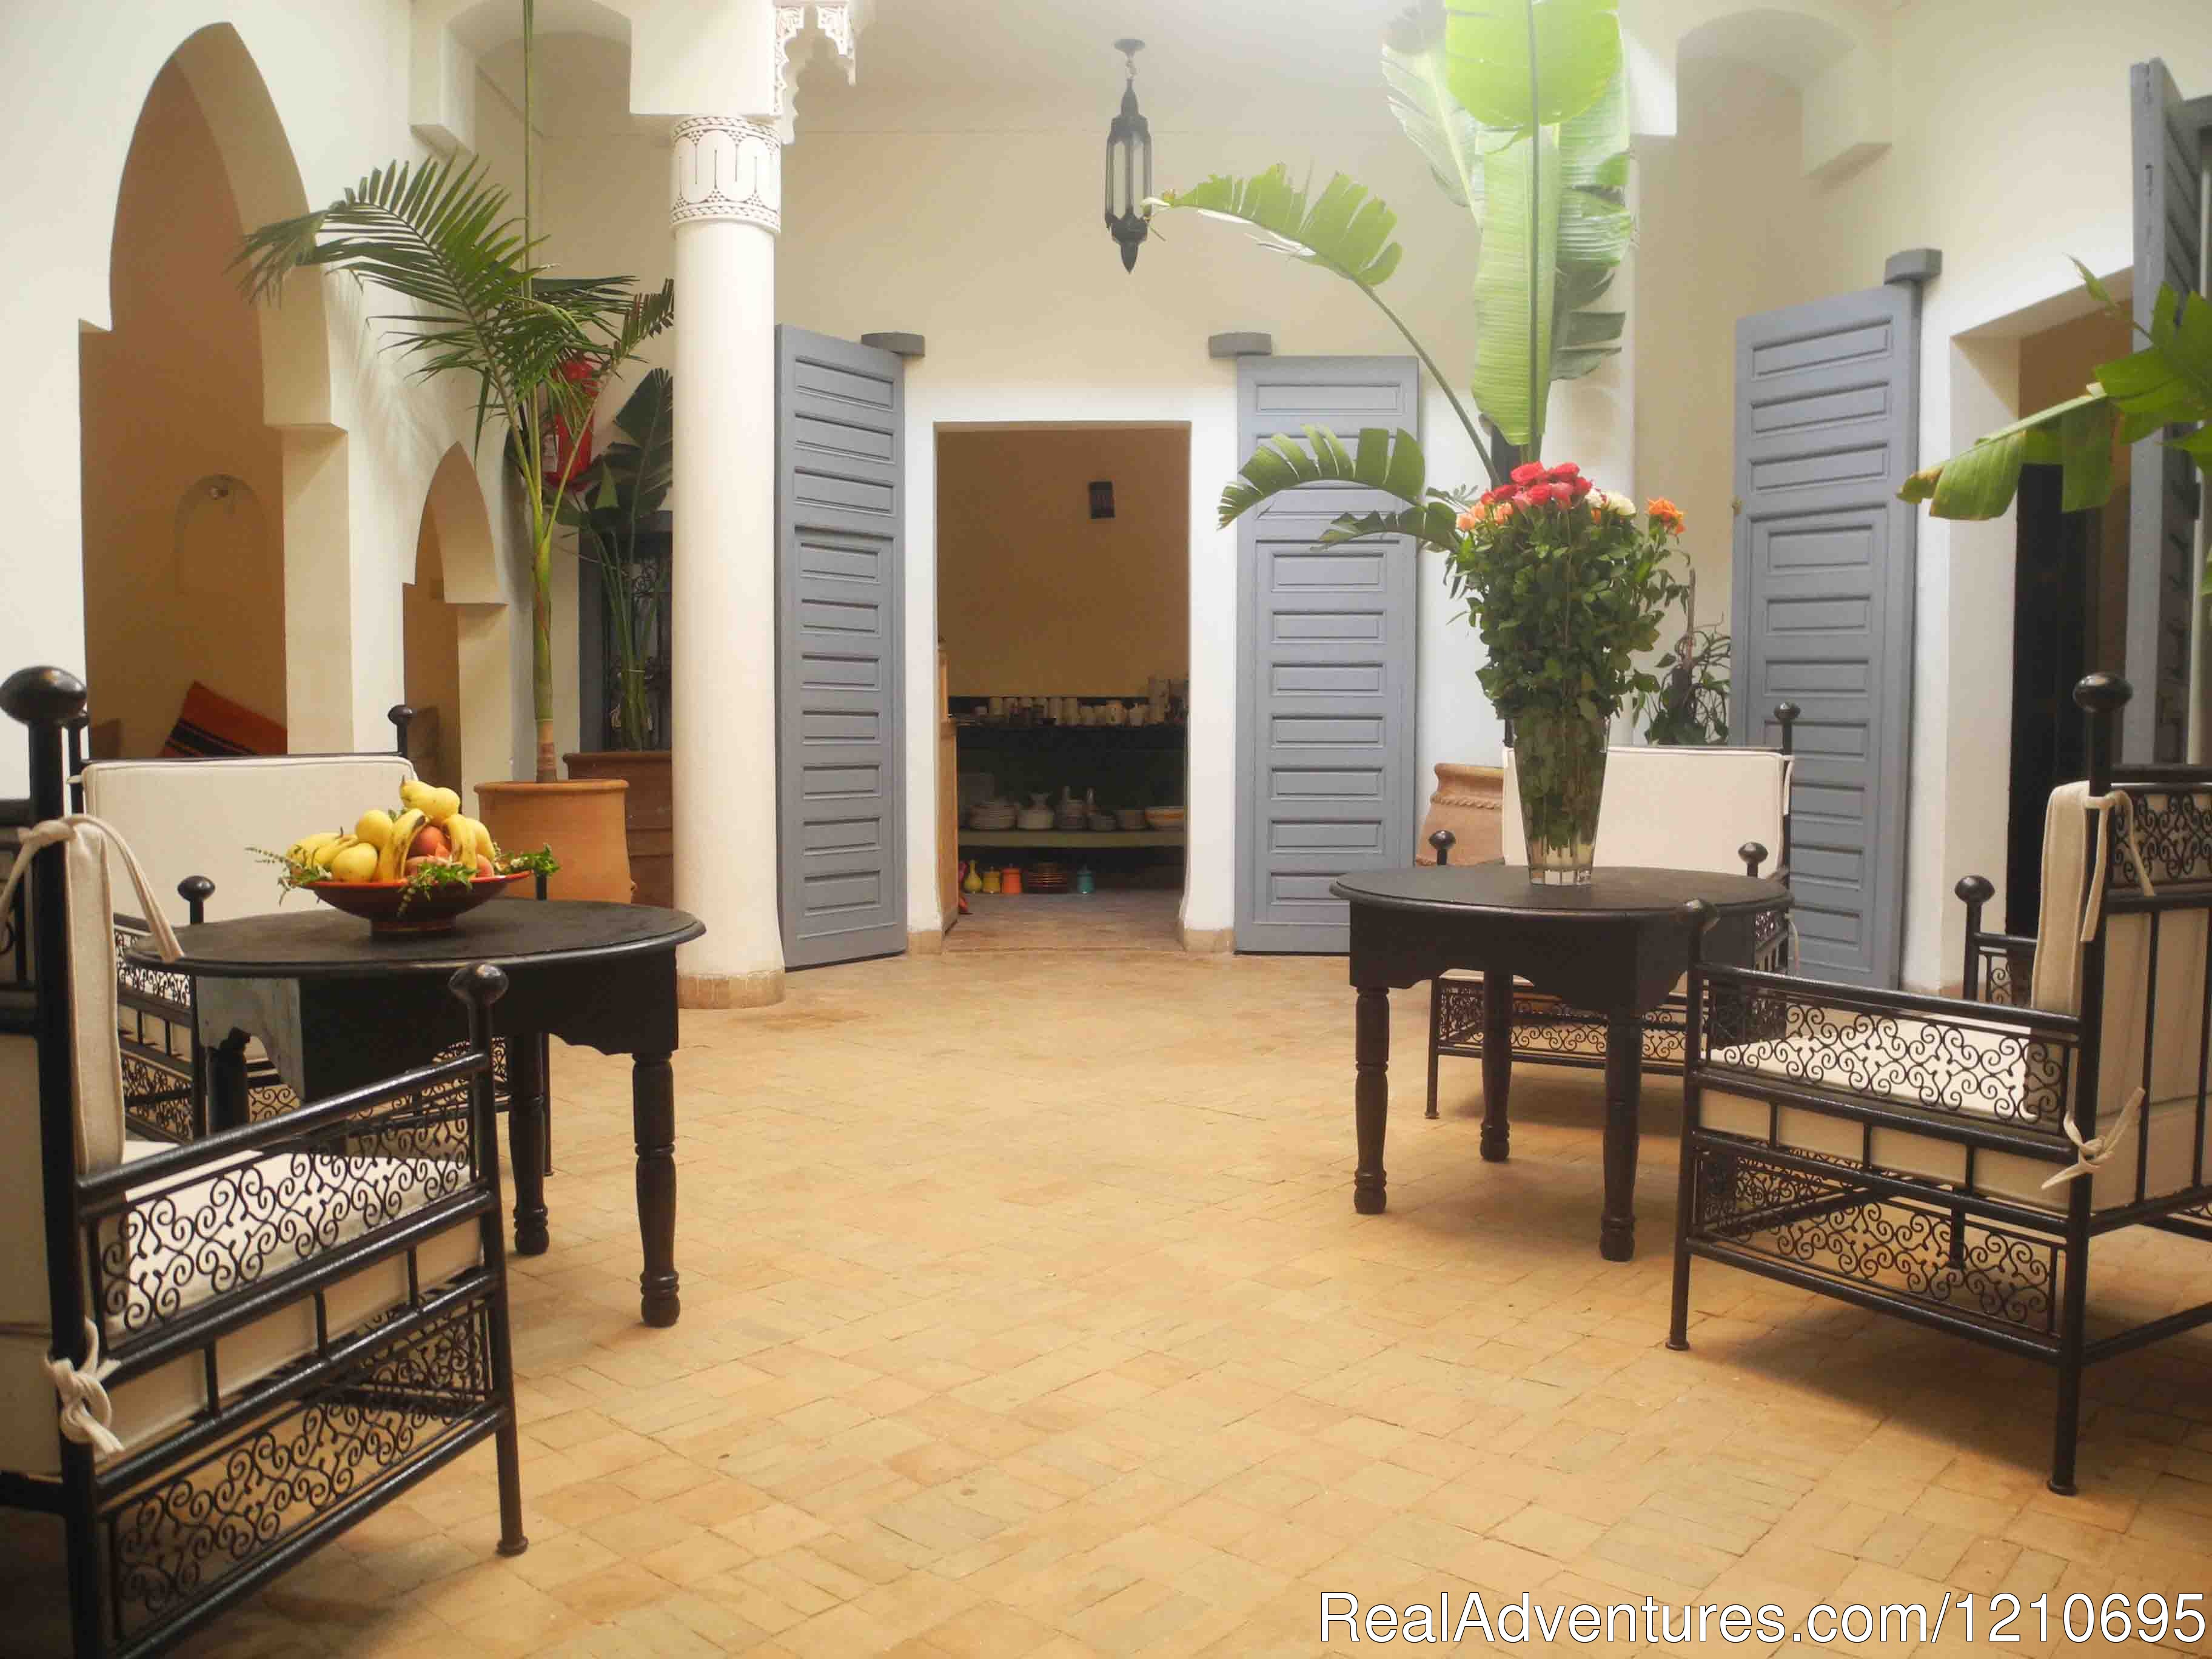 Riad Linda courtyard | Image #1/26 | Marrakech Medina, Morocco | Bed & Breakfasts | Riad Linda - great central location